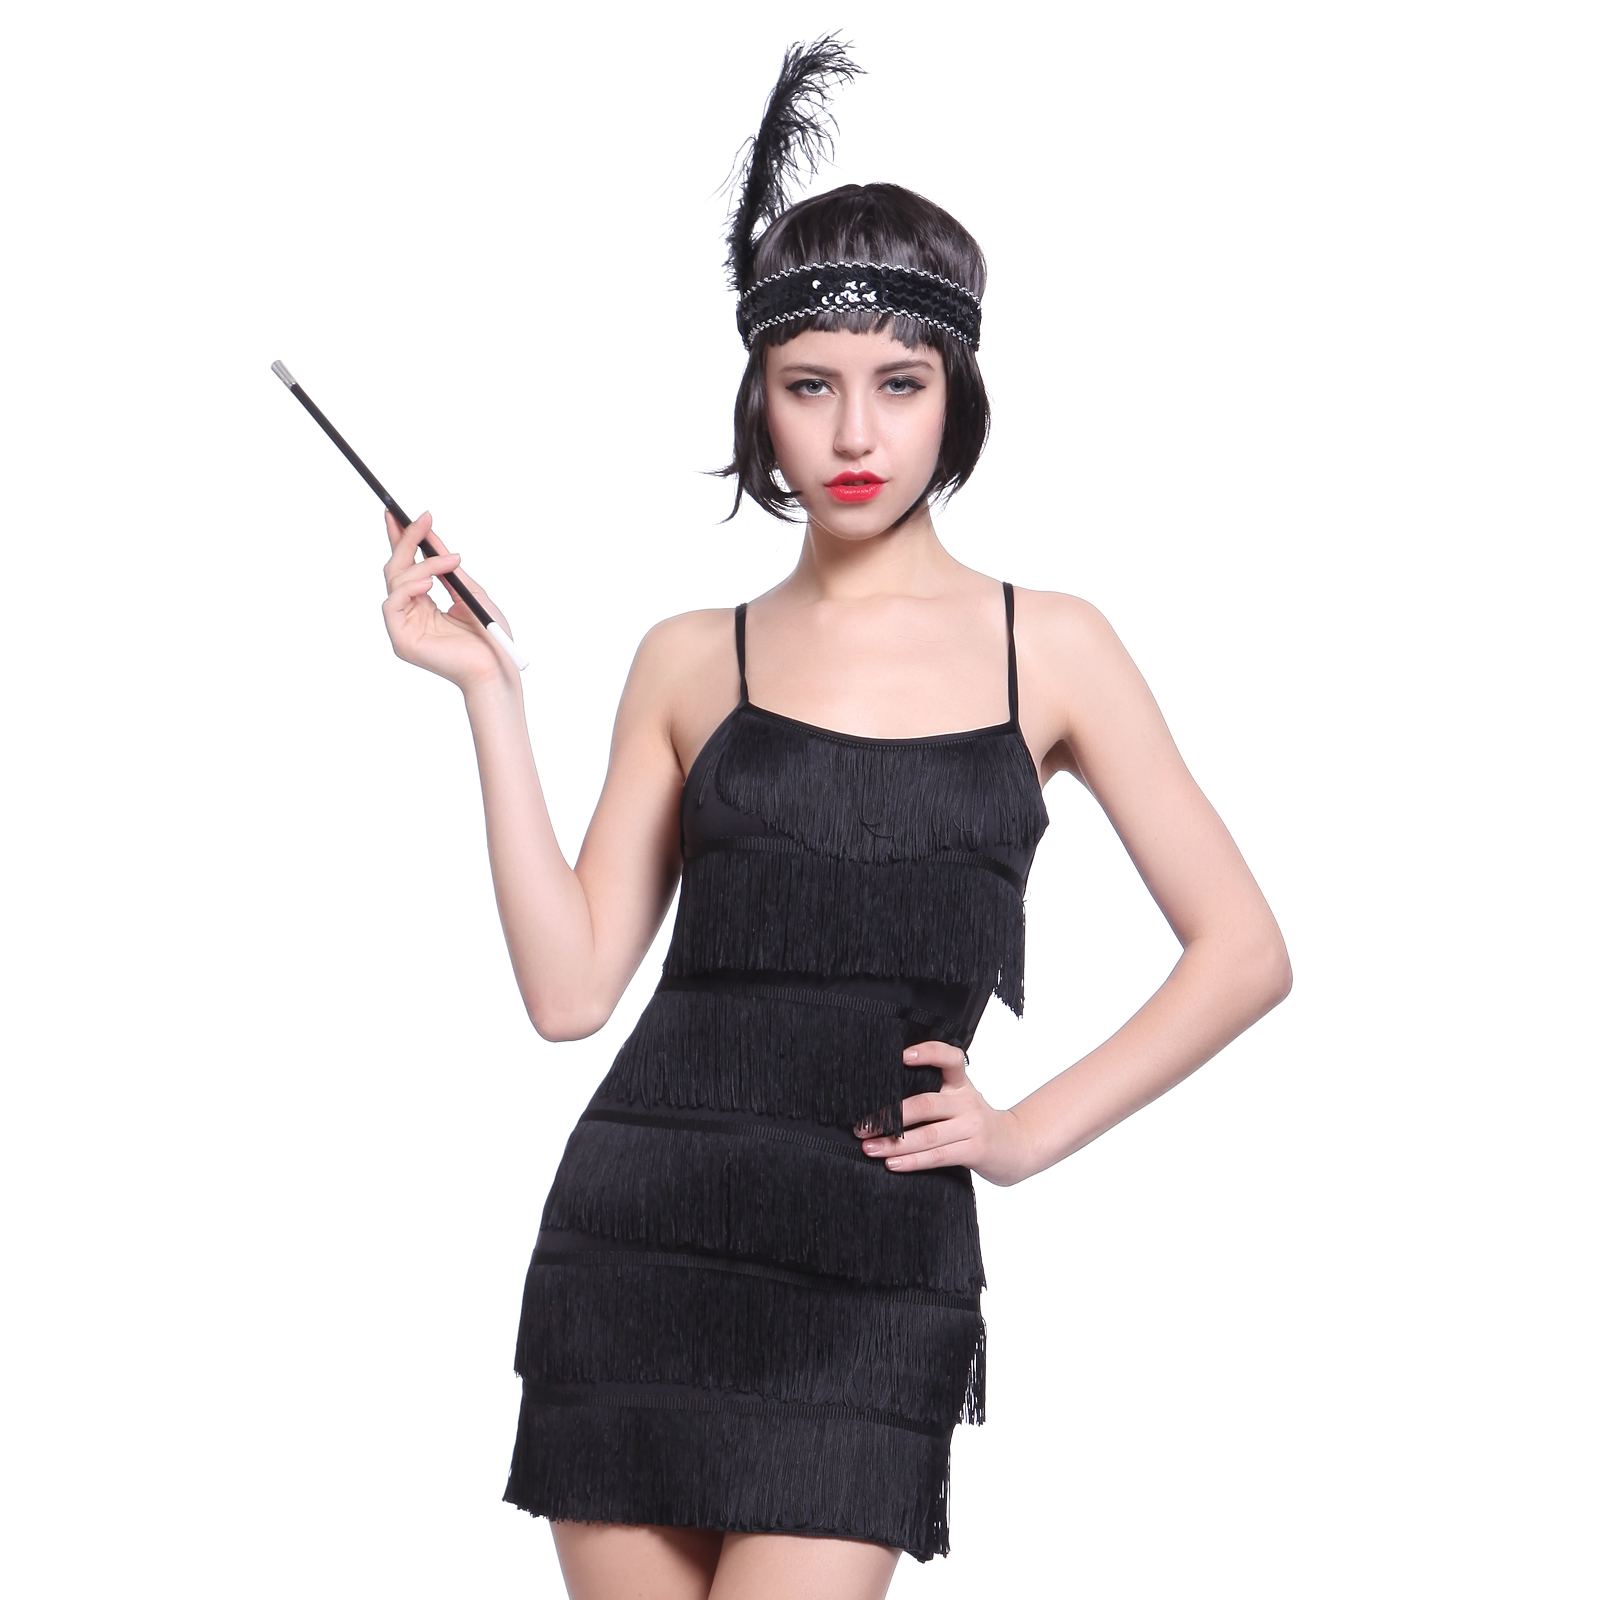 deguisement costume tenue robe a frange bandeau flume cigarette annee 20 1920 ebay. Black Bedroom Furniture Sets. Home Design Ideas